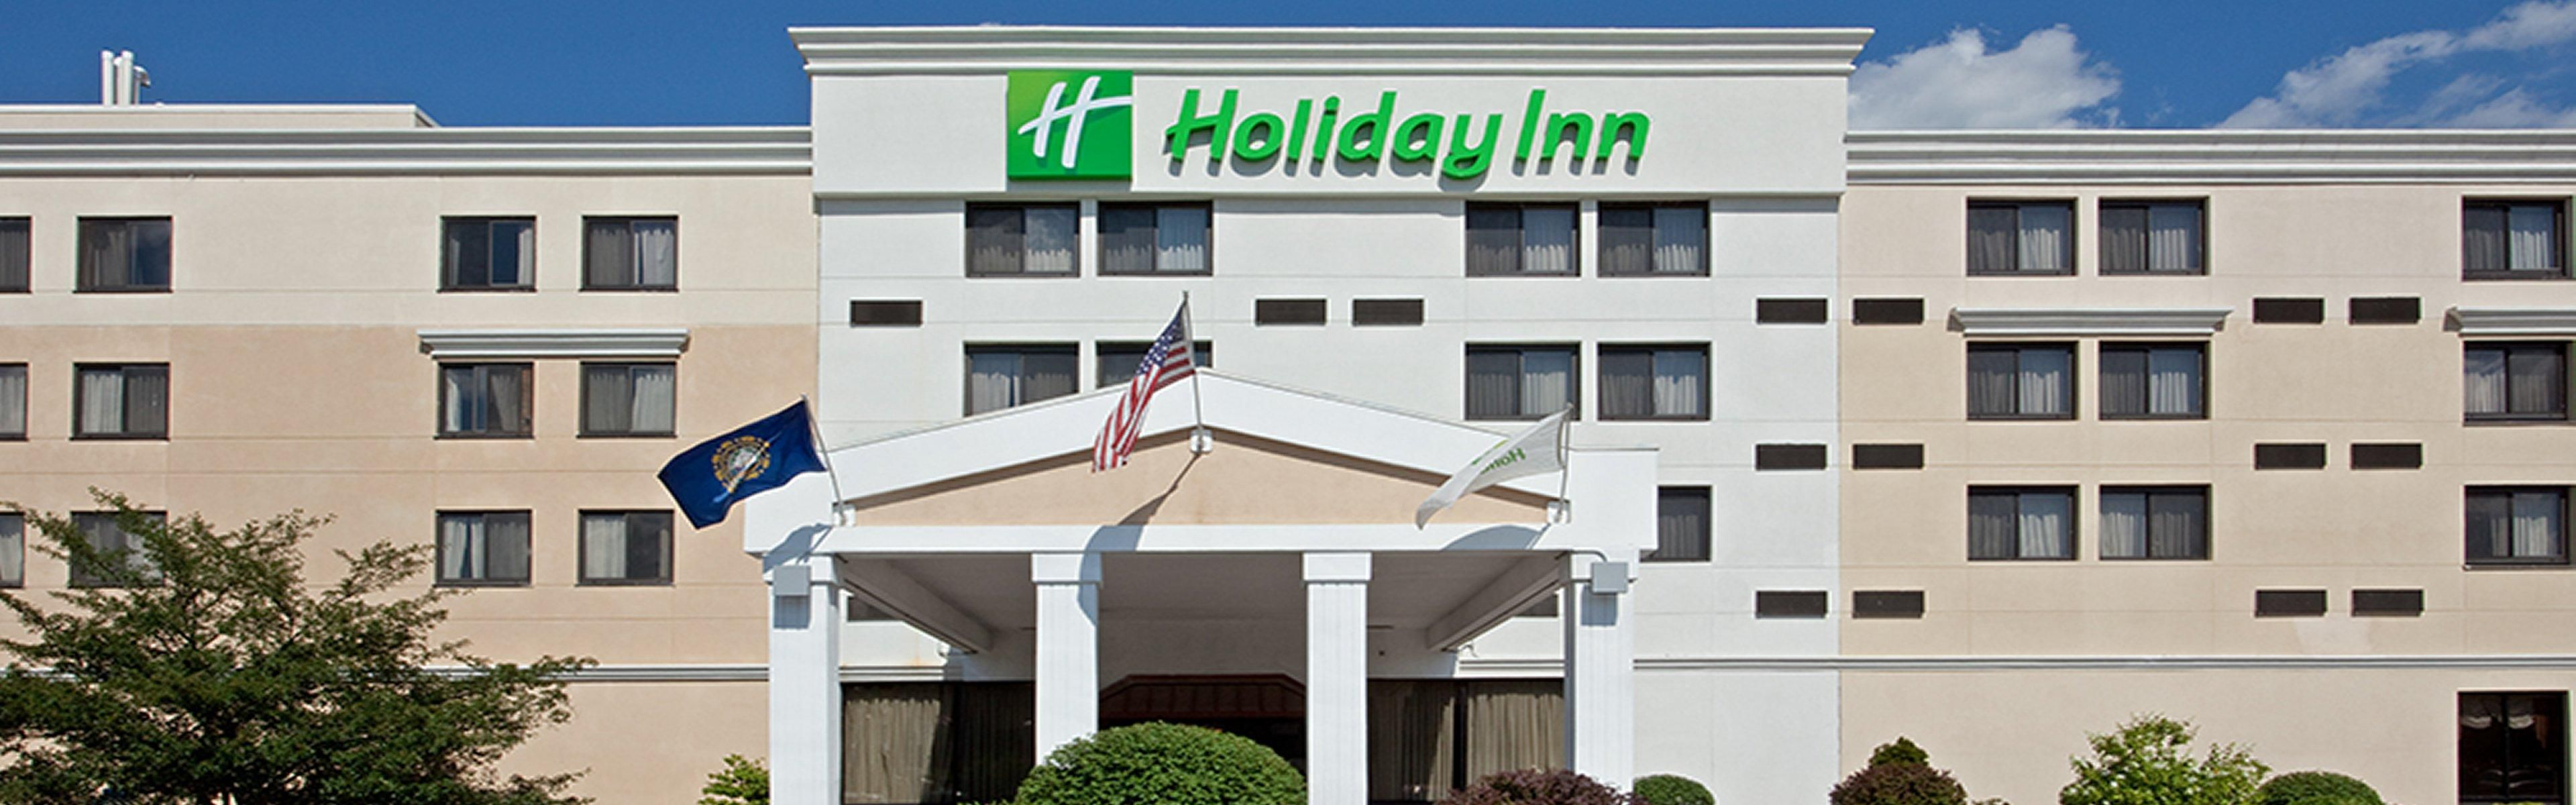 Holiday Inn Concord Downtown image 0